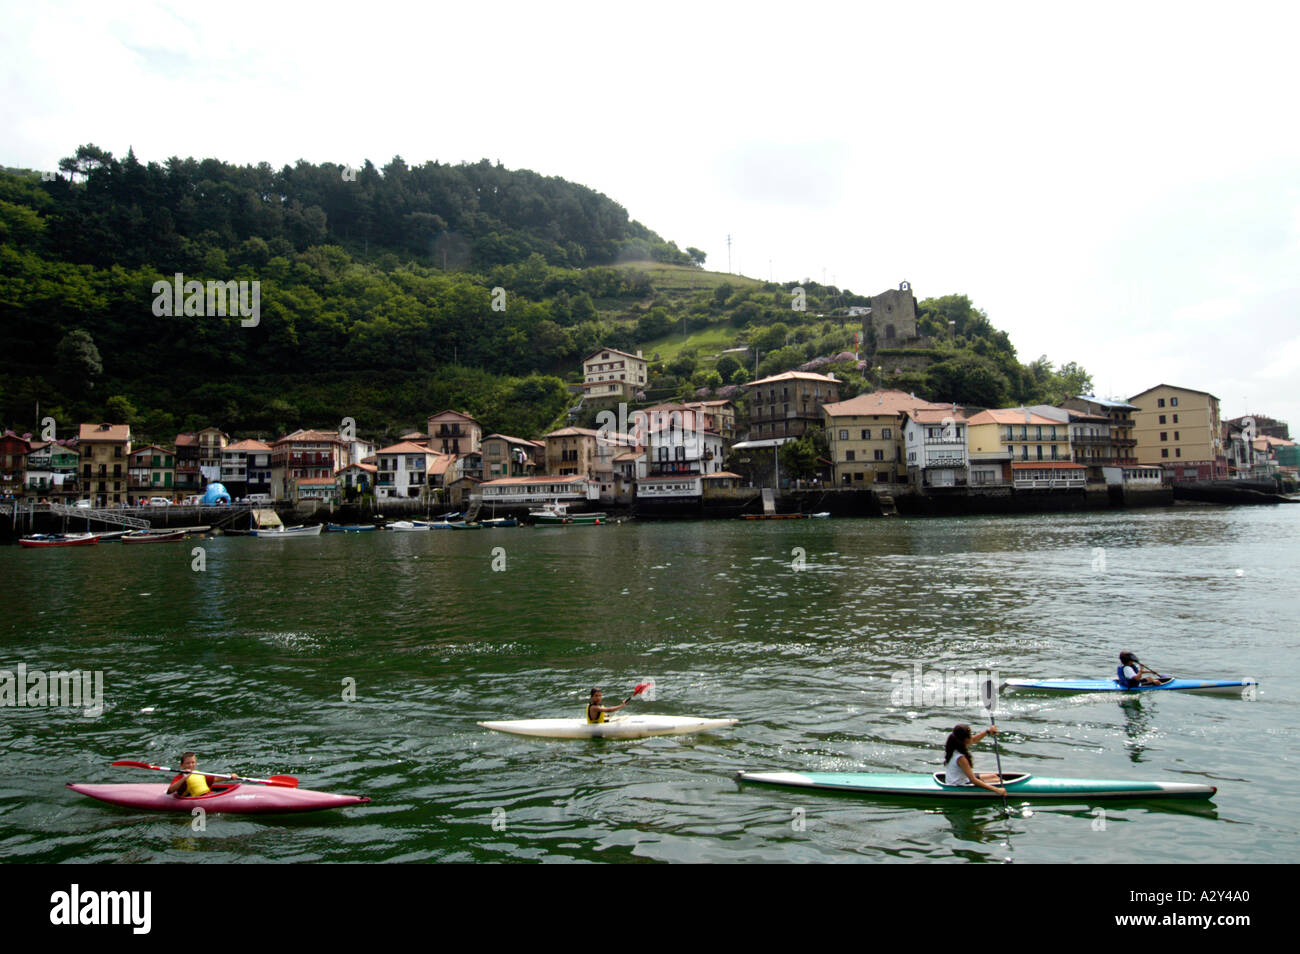 Children canoeing opposite the town of Pasajes San Juan near San Sebastian,Spain - Stock Image